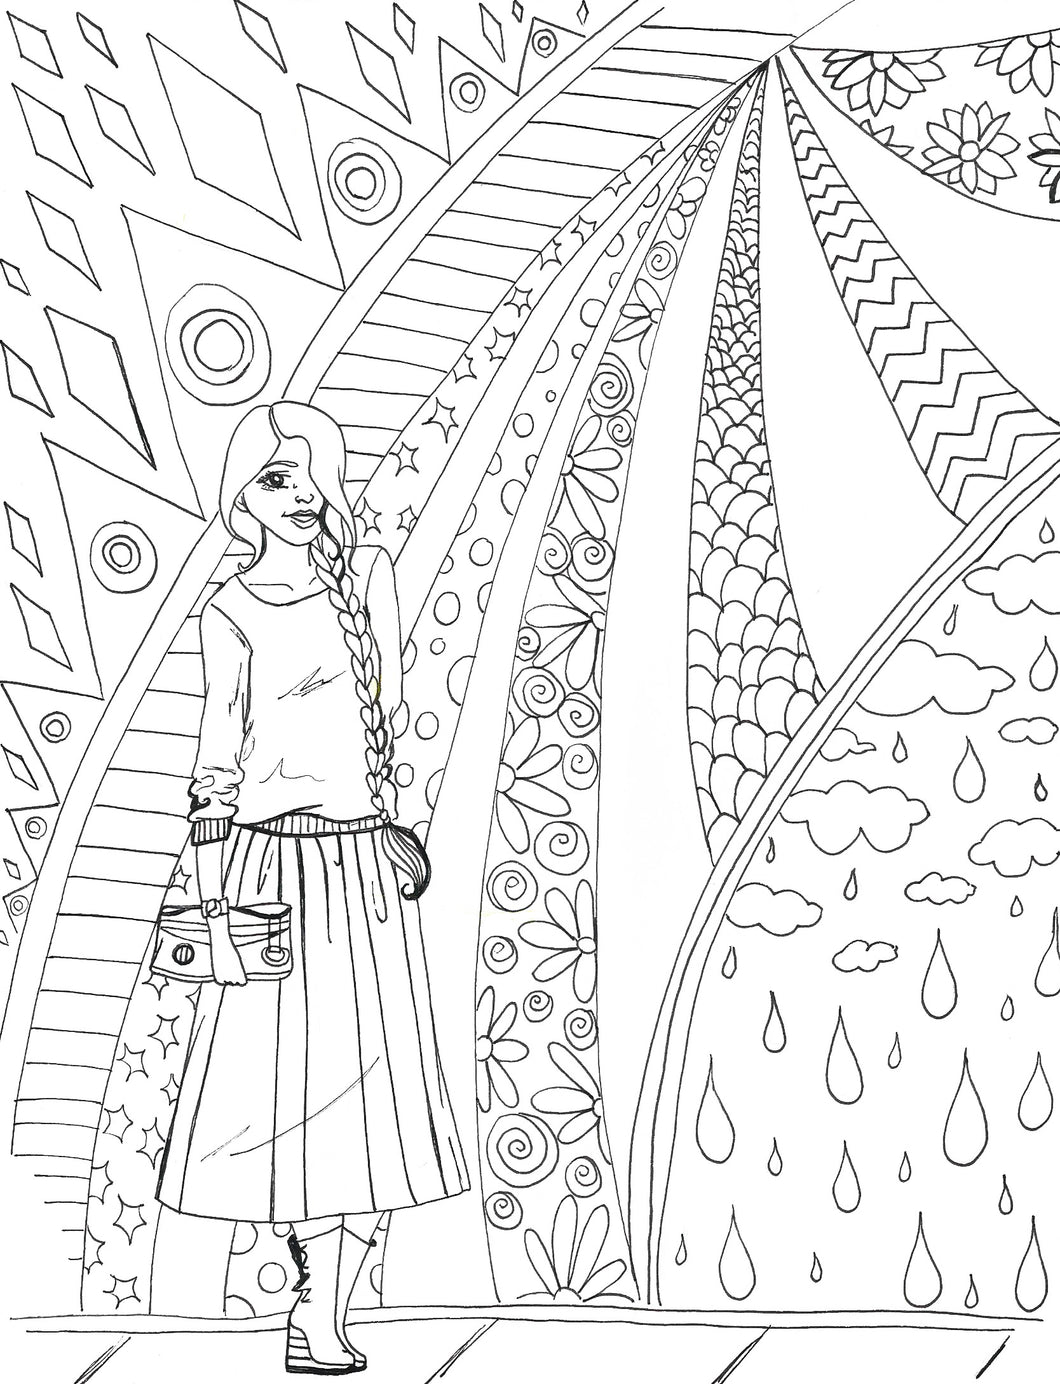 Modest Memorial Coloring Page